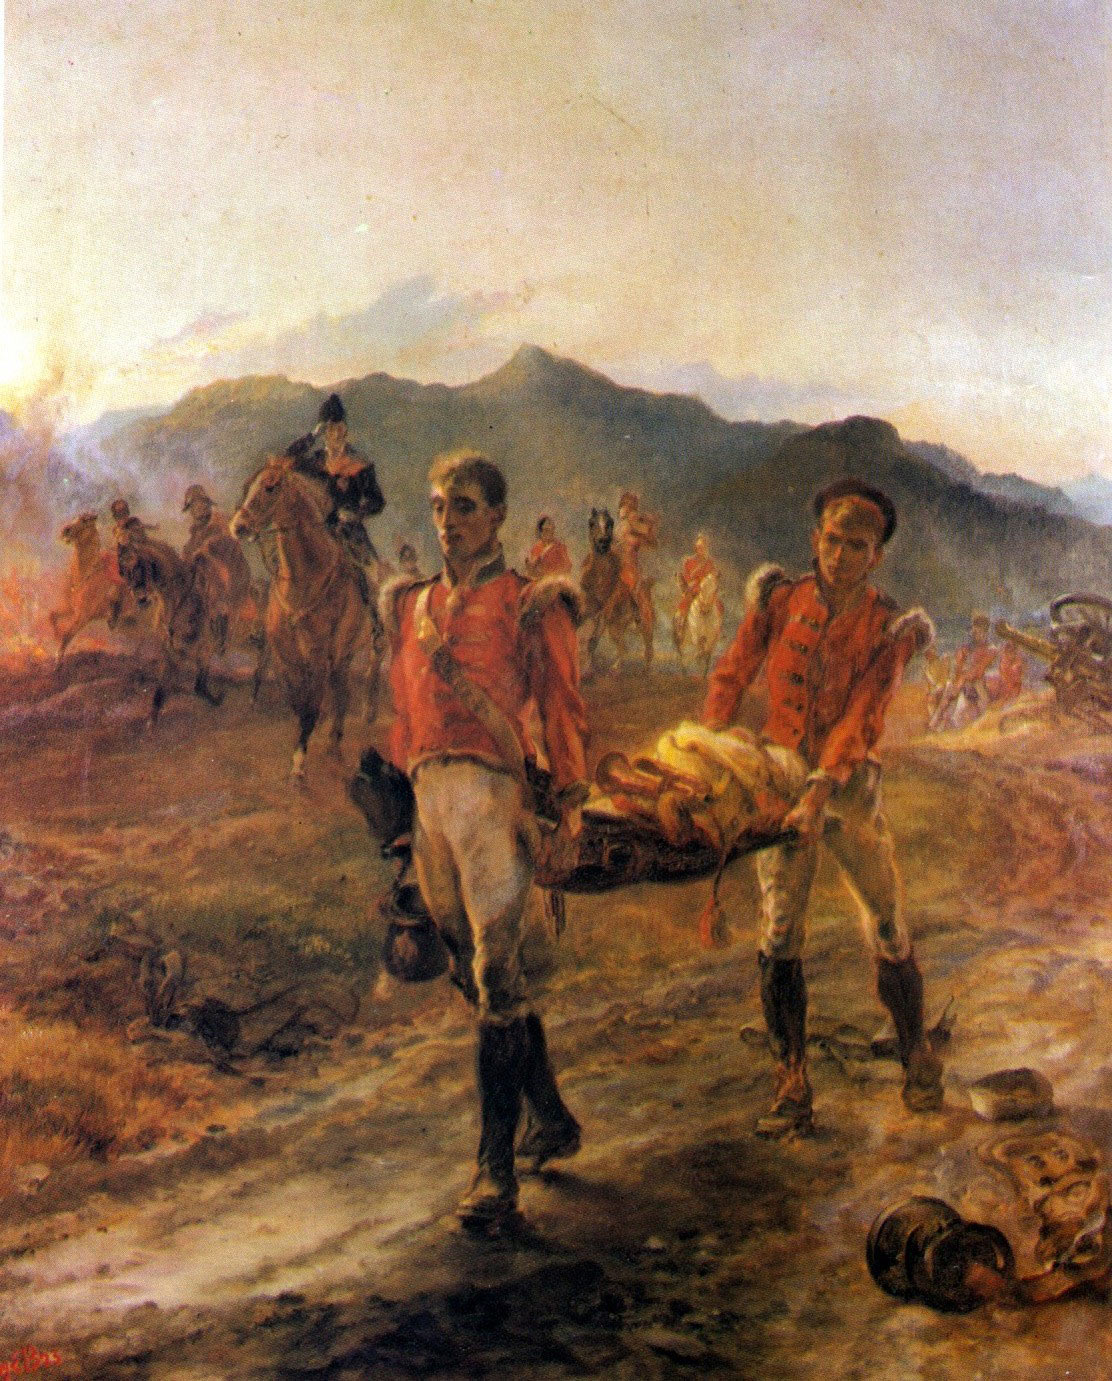 43rd Regiment collecting the dead after the Battle of Talavera on 28th July 1809 in the Peninsular War: picture by Lady Butler